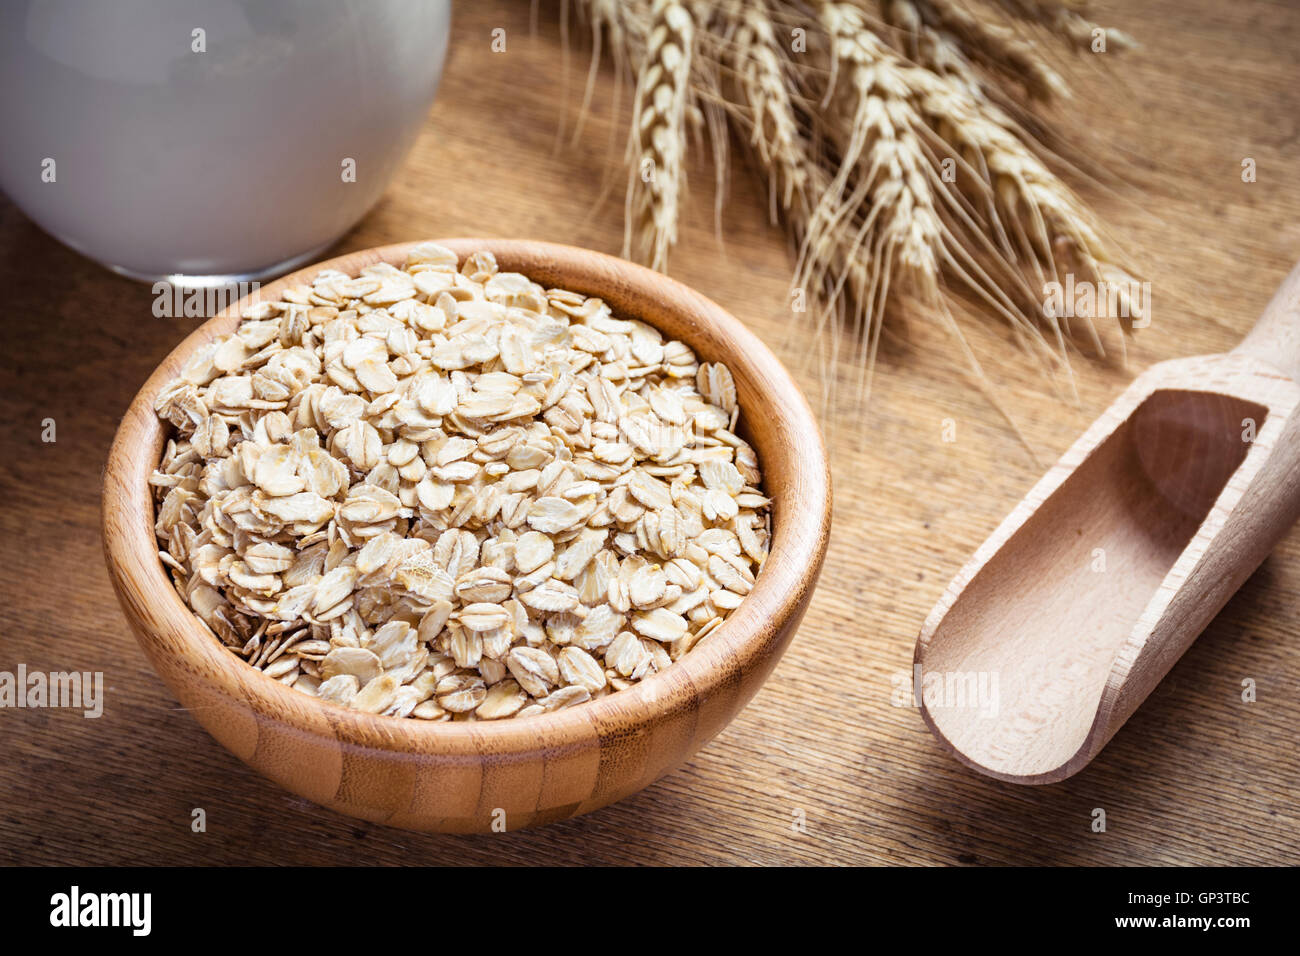 Rolled oats (oat flakes), milk and golden wheat ears on wooden background. Raw food ingredients, healthy lifestyle, - Stock Image